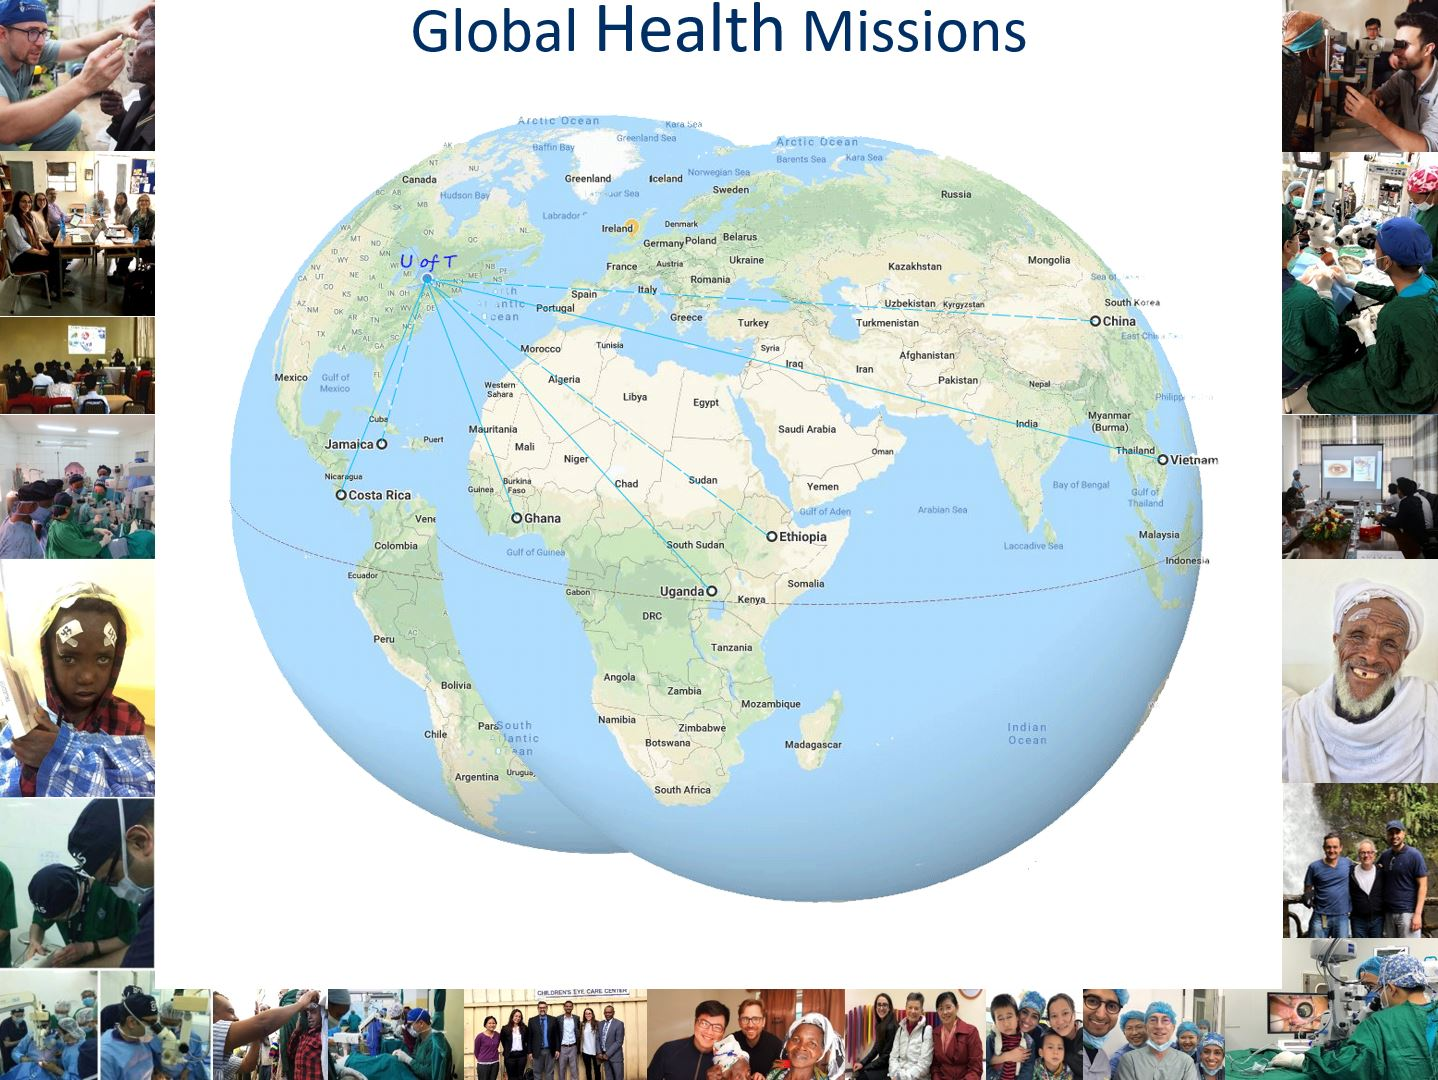 Global Health Missions